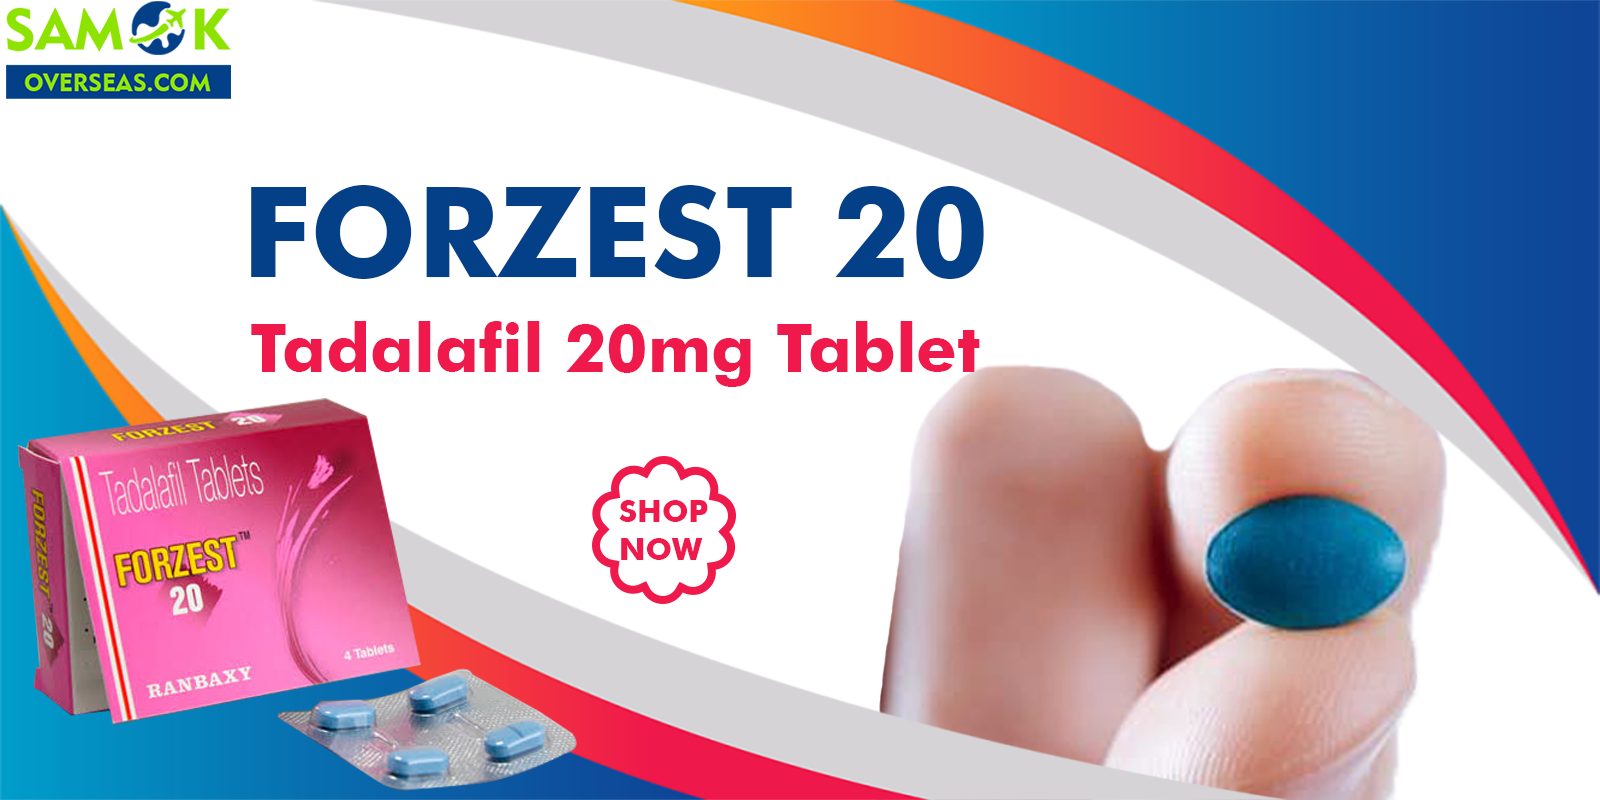 Buy Forzest 20 mg Tablets online